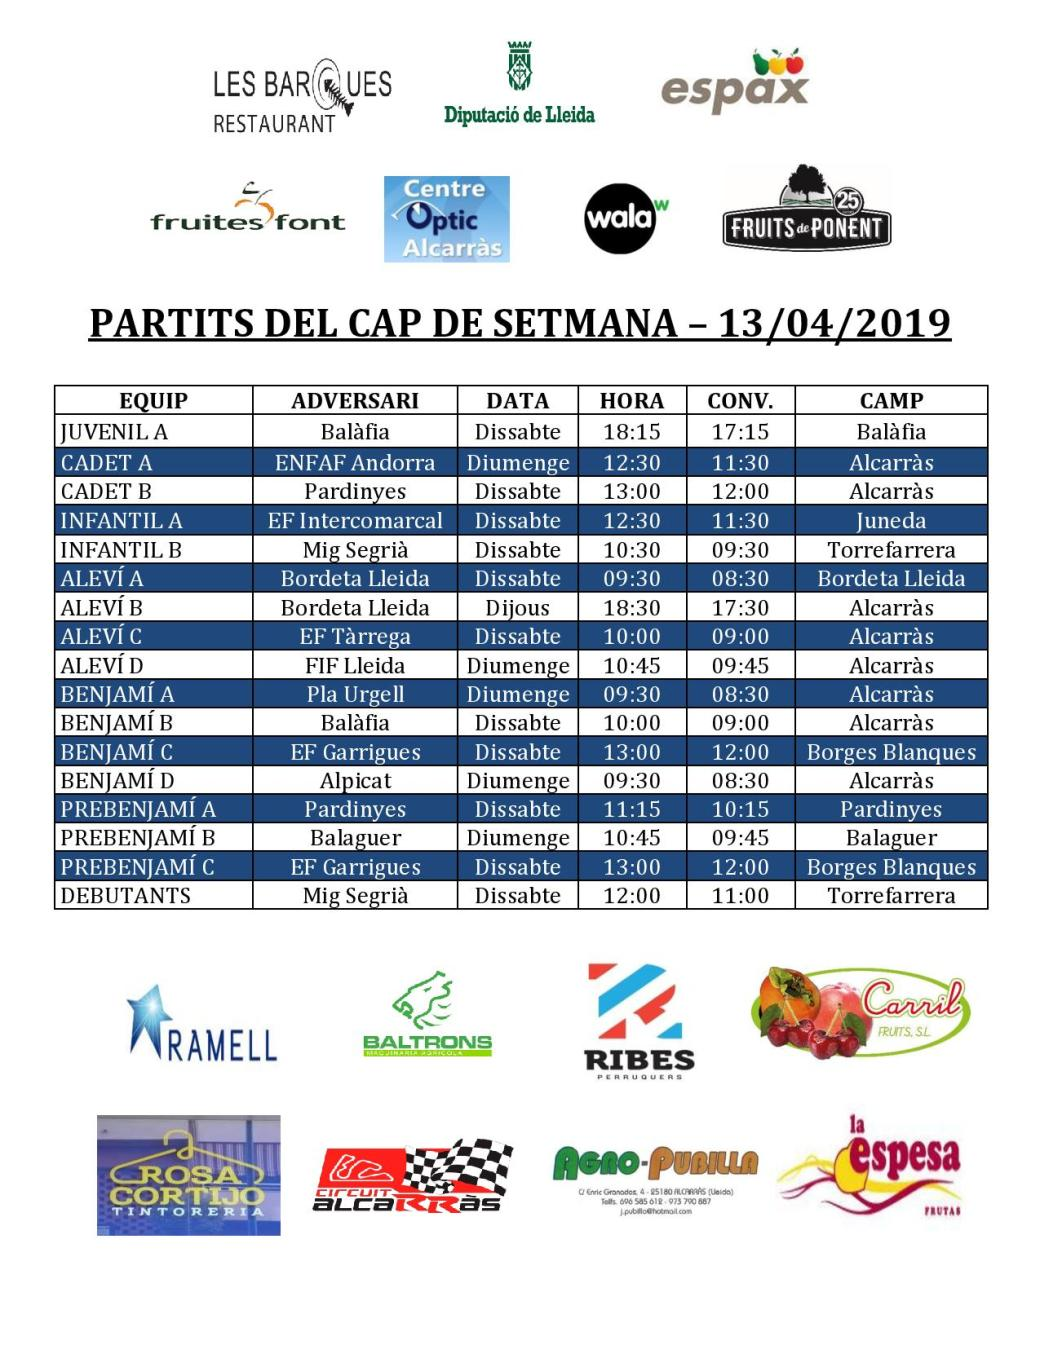 PARTITS 13 i 14 ABRIL 2019-page-001